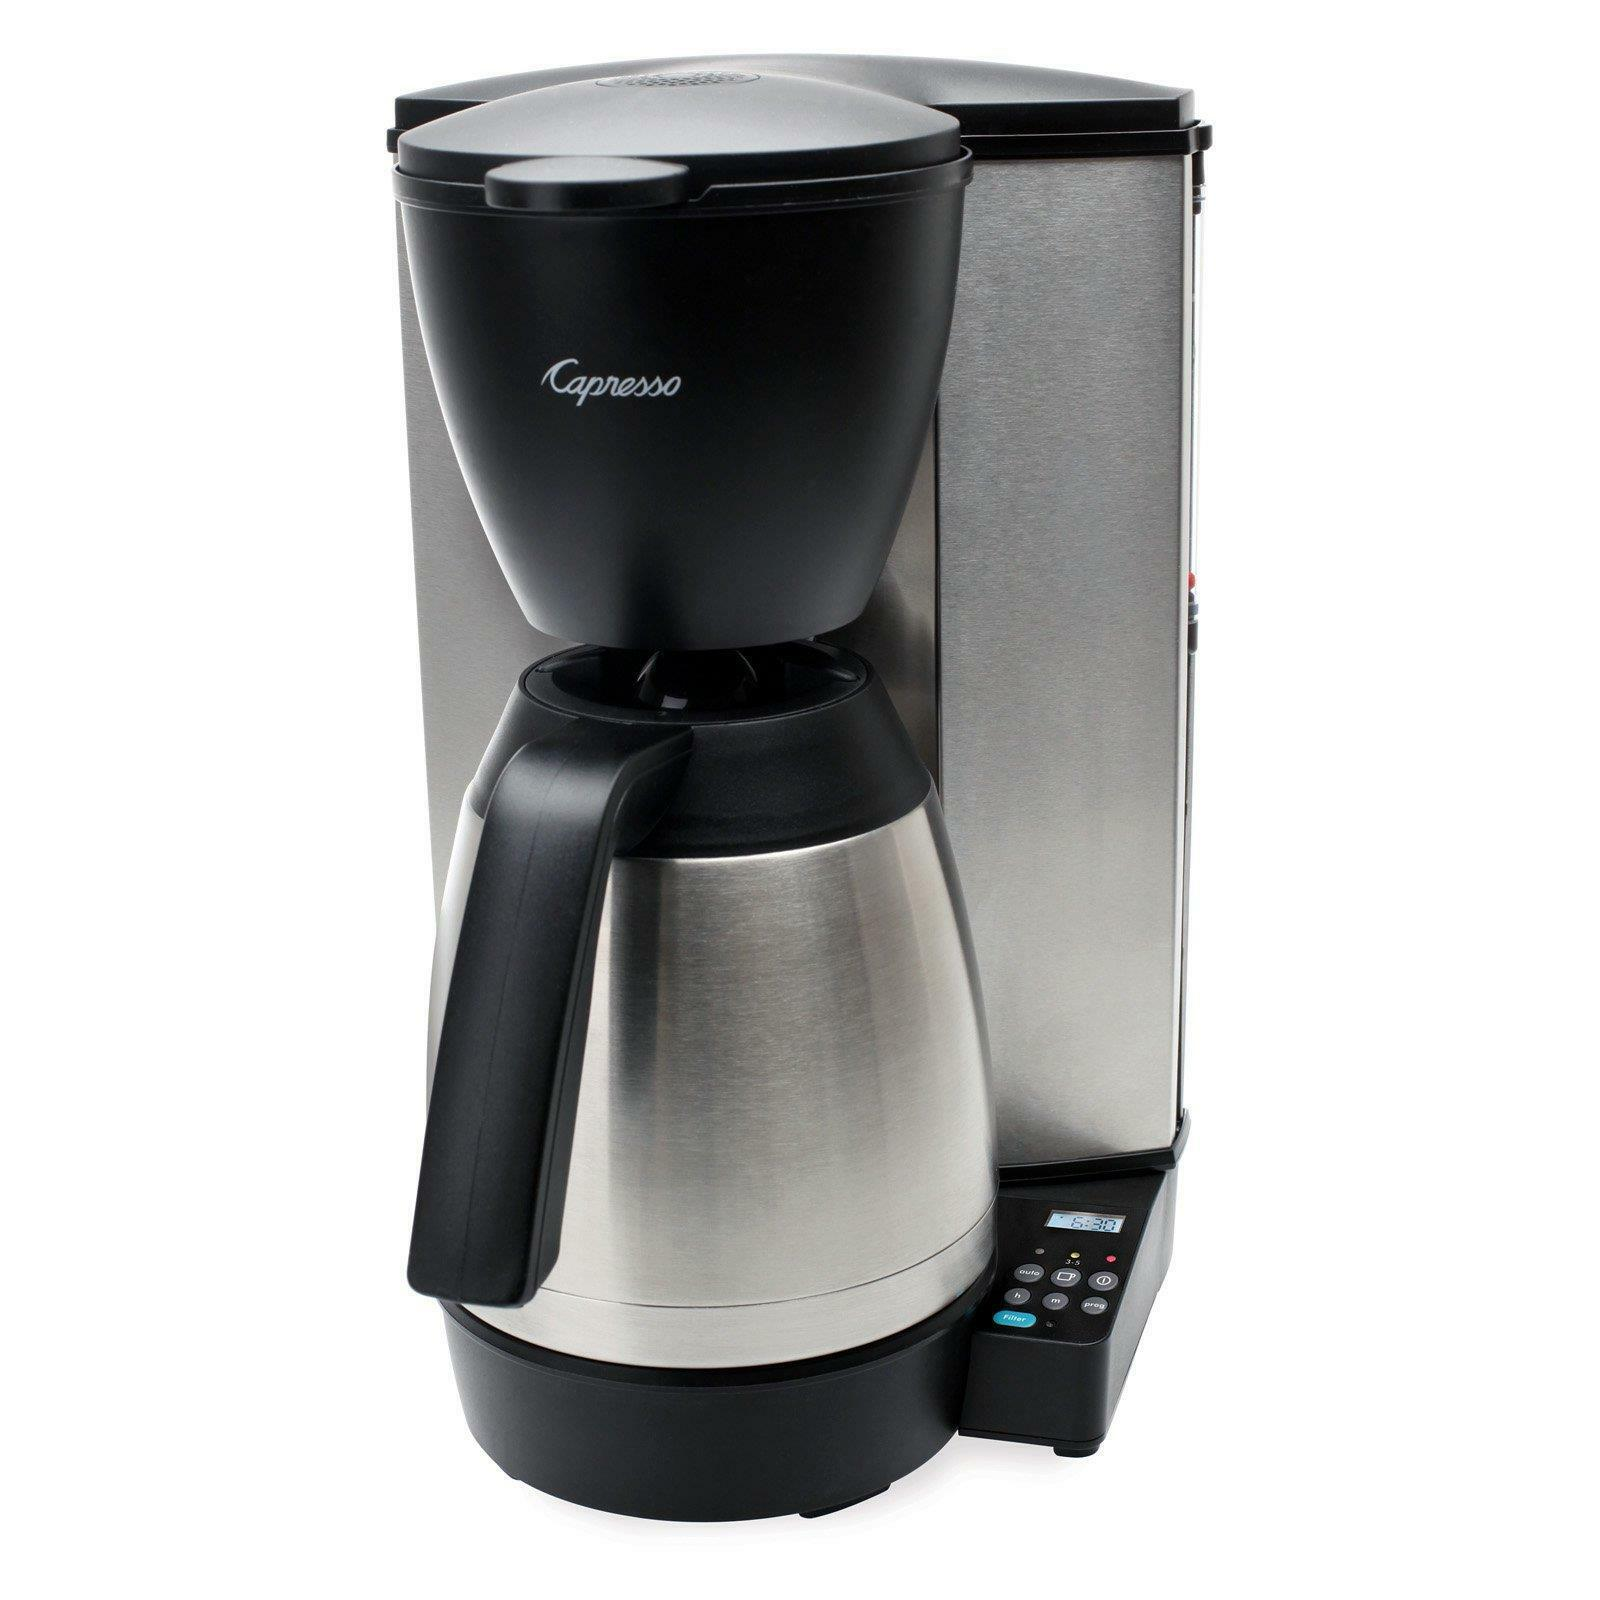 10-Cup Programmable Coffee Maker Thermal Carafe Stainless Steel Filter Lined New